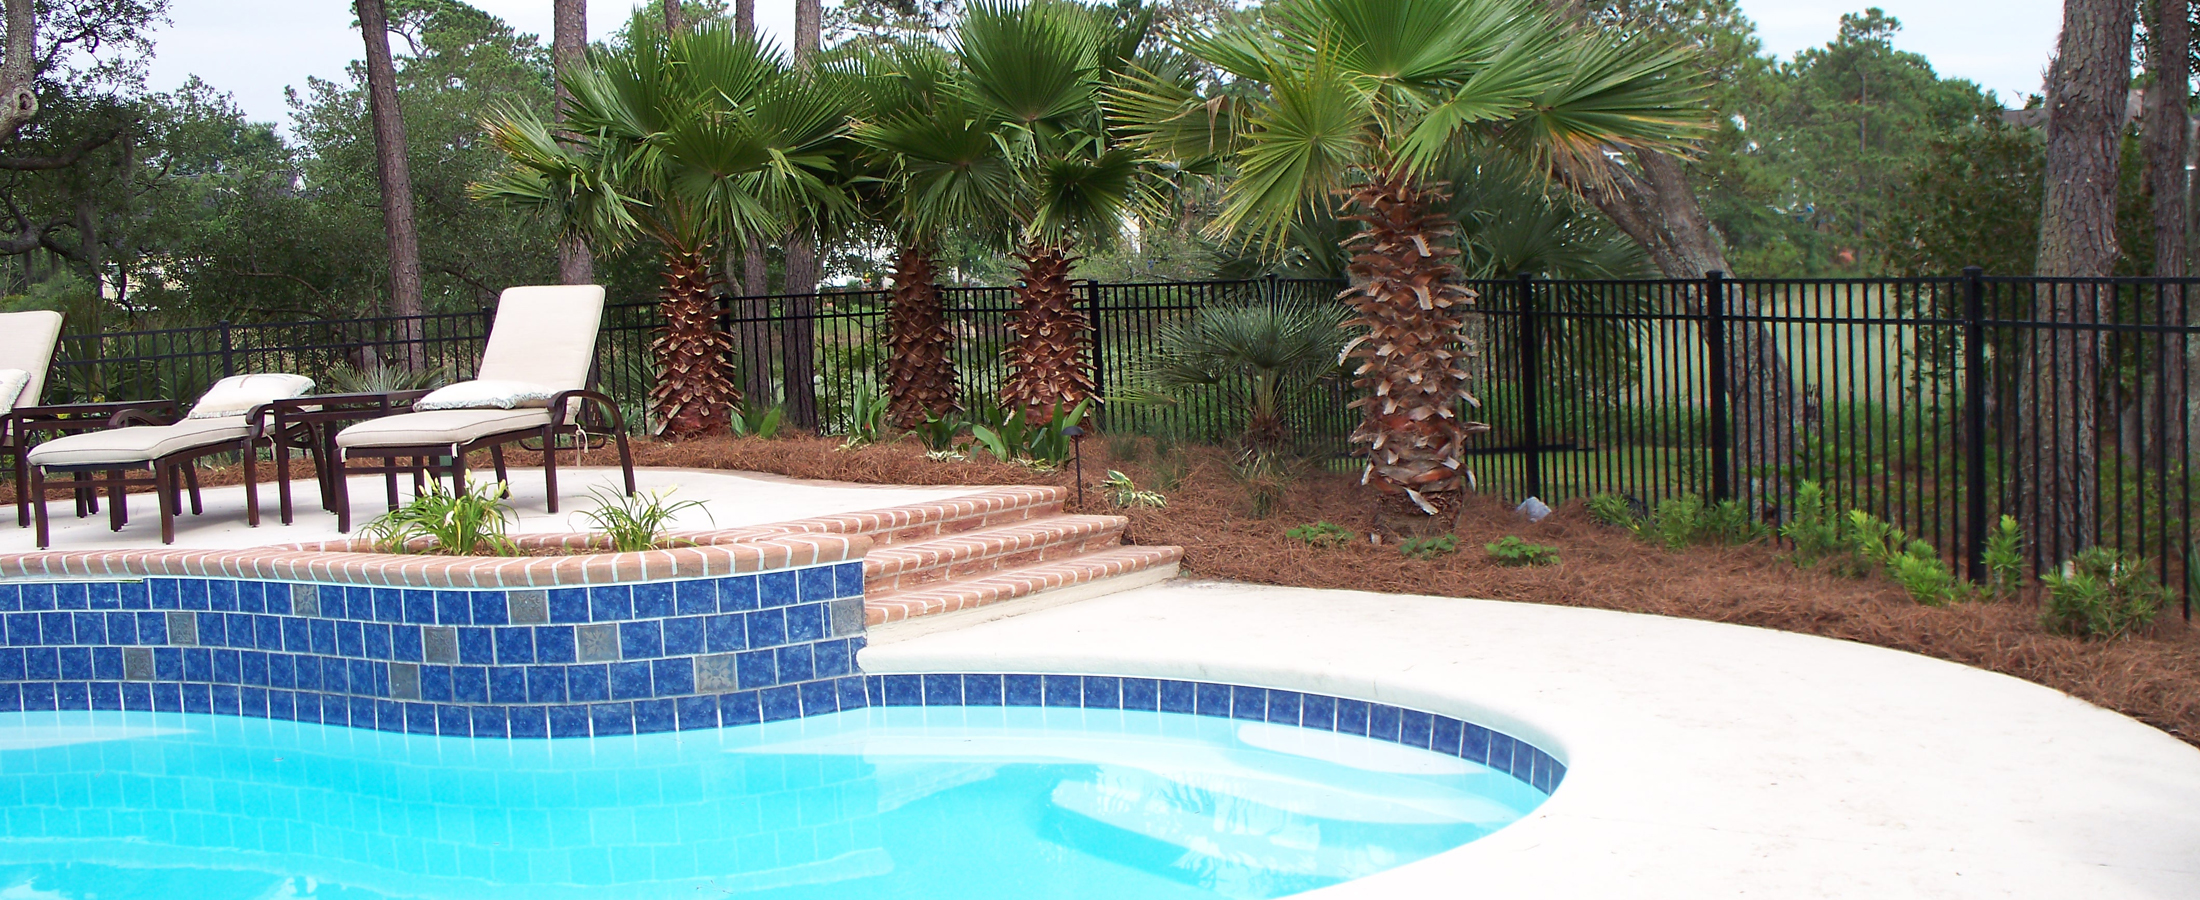 Prestige Landscape - Charleston Irrigation Systems